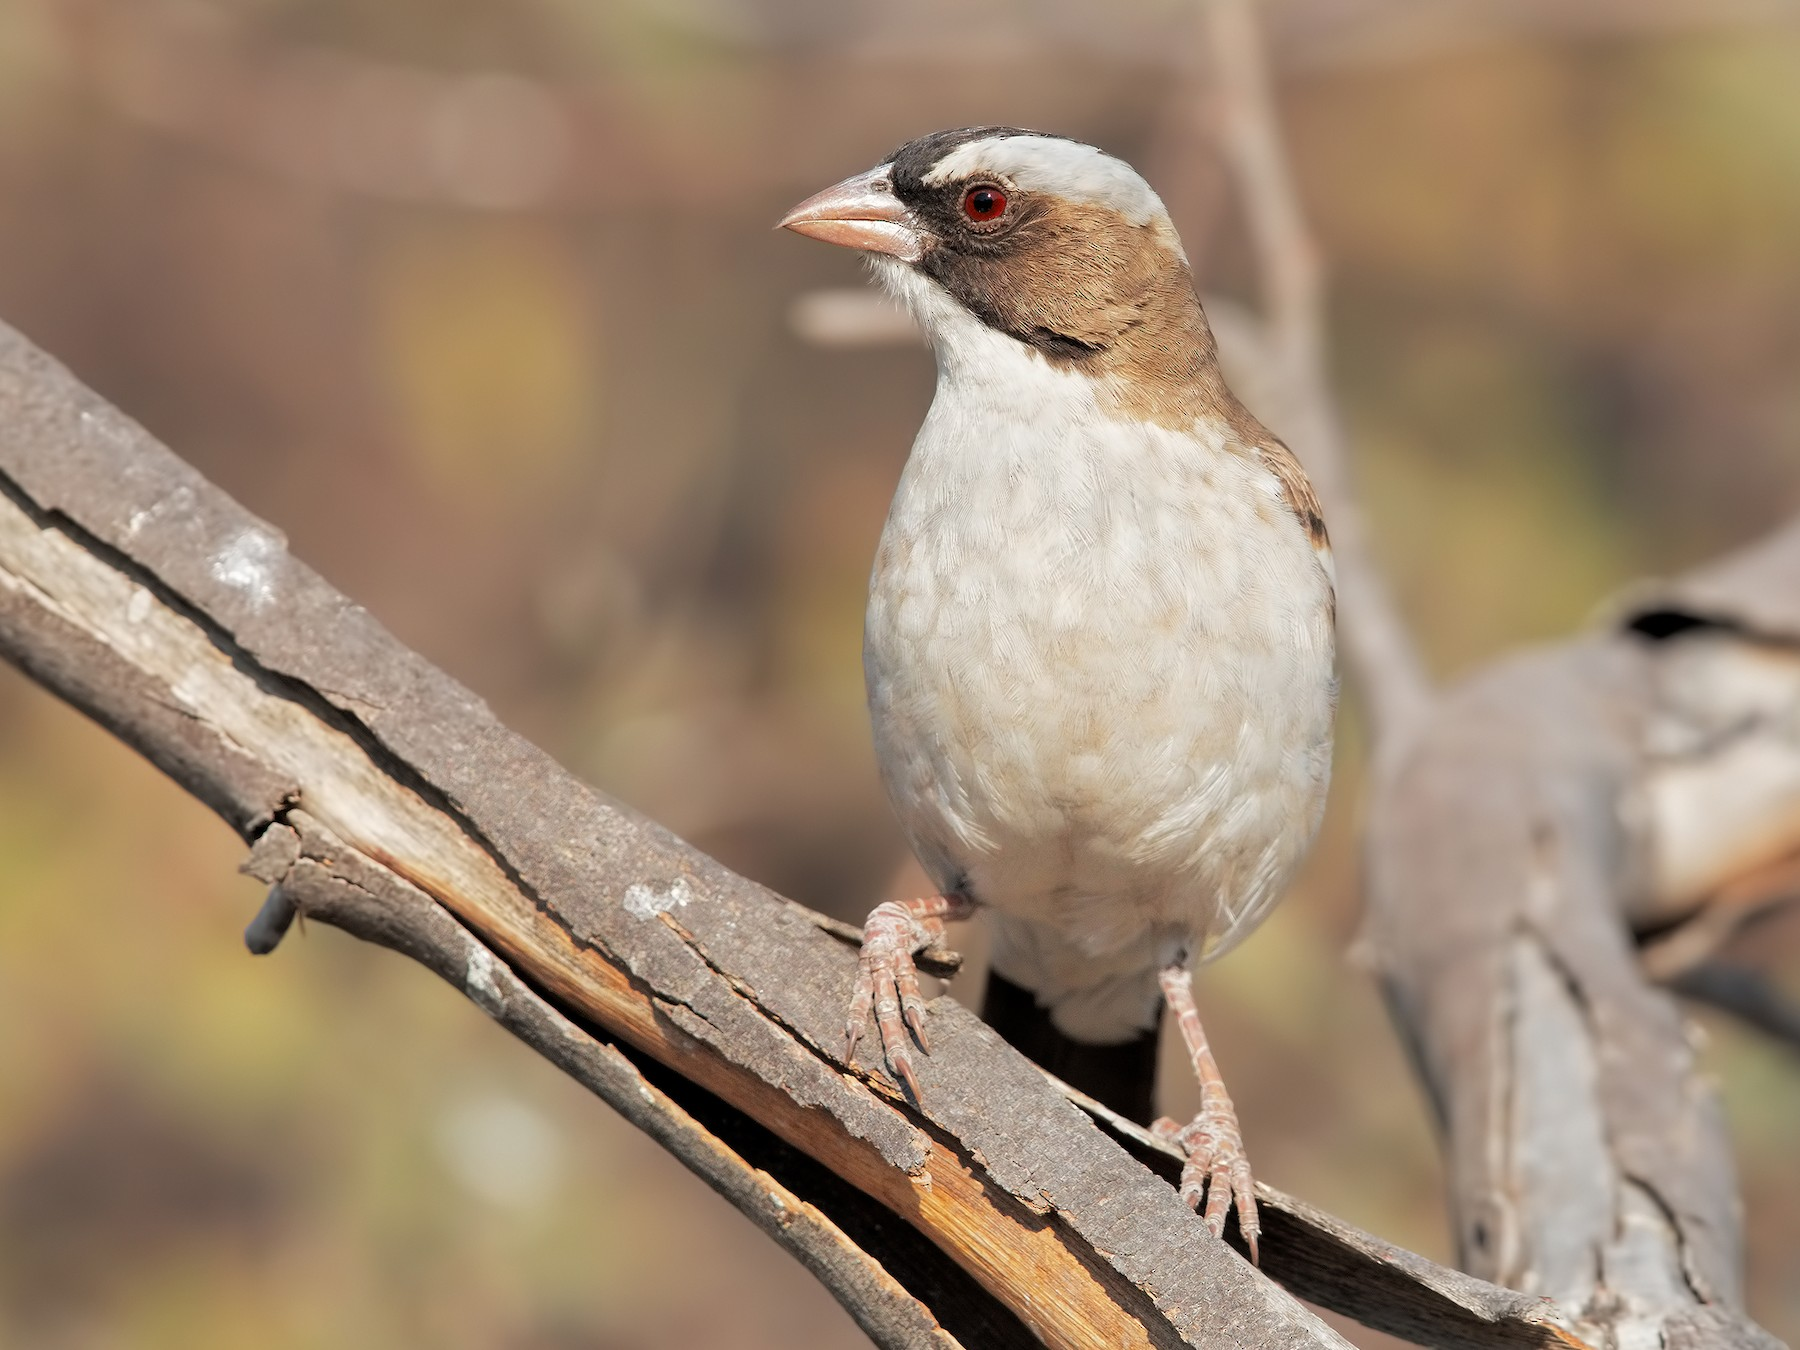 White-browed Sparrow-Weaver - Marco Valentini